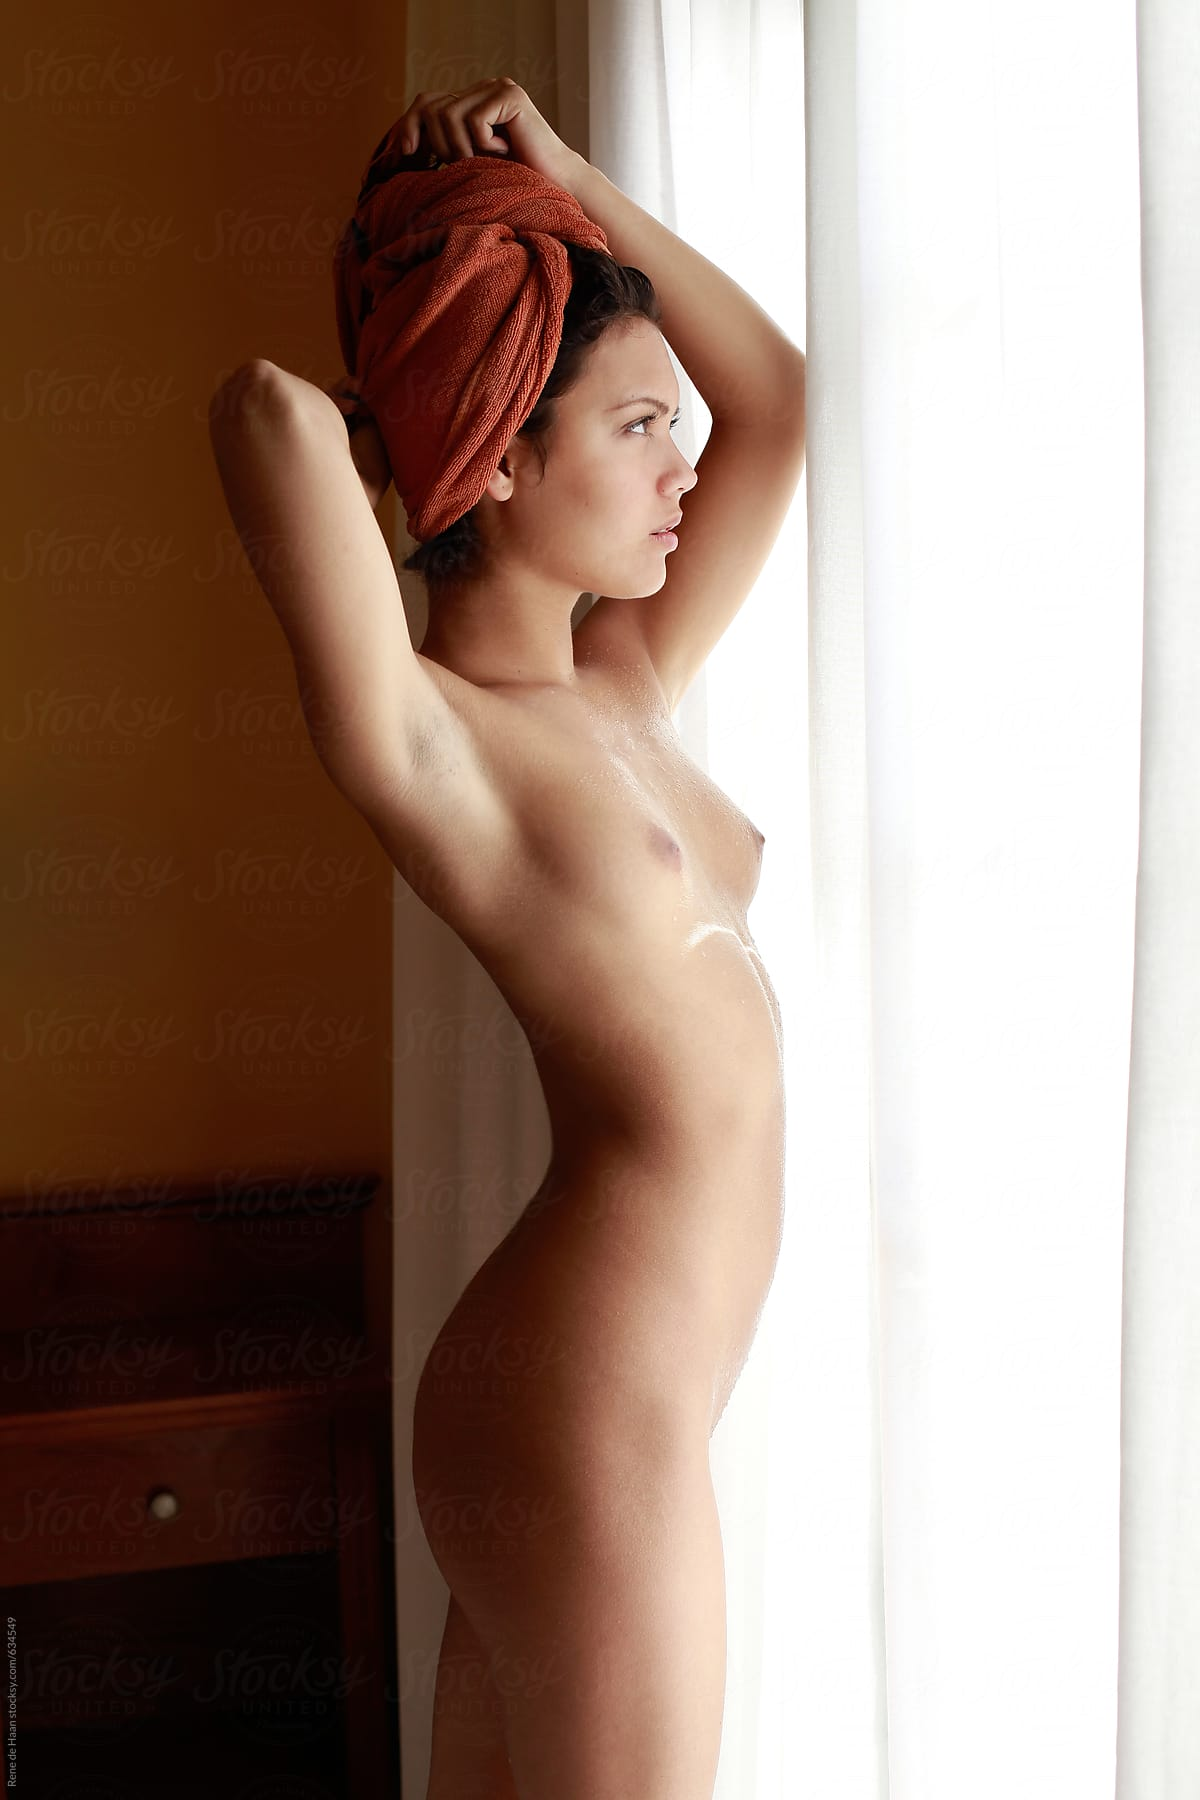 Naked Young Woman In Front Of Window By Rene De Haan -1336